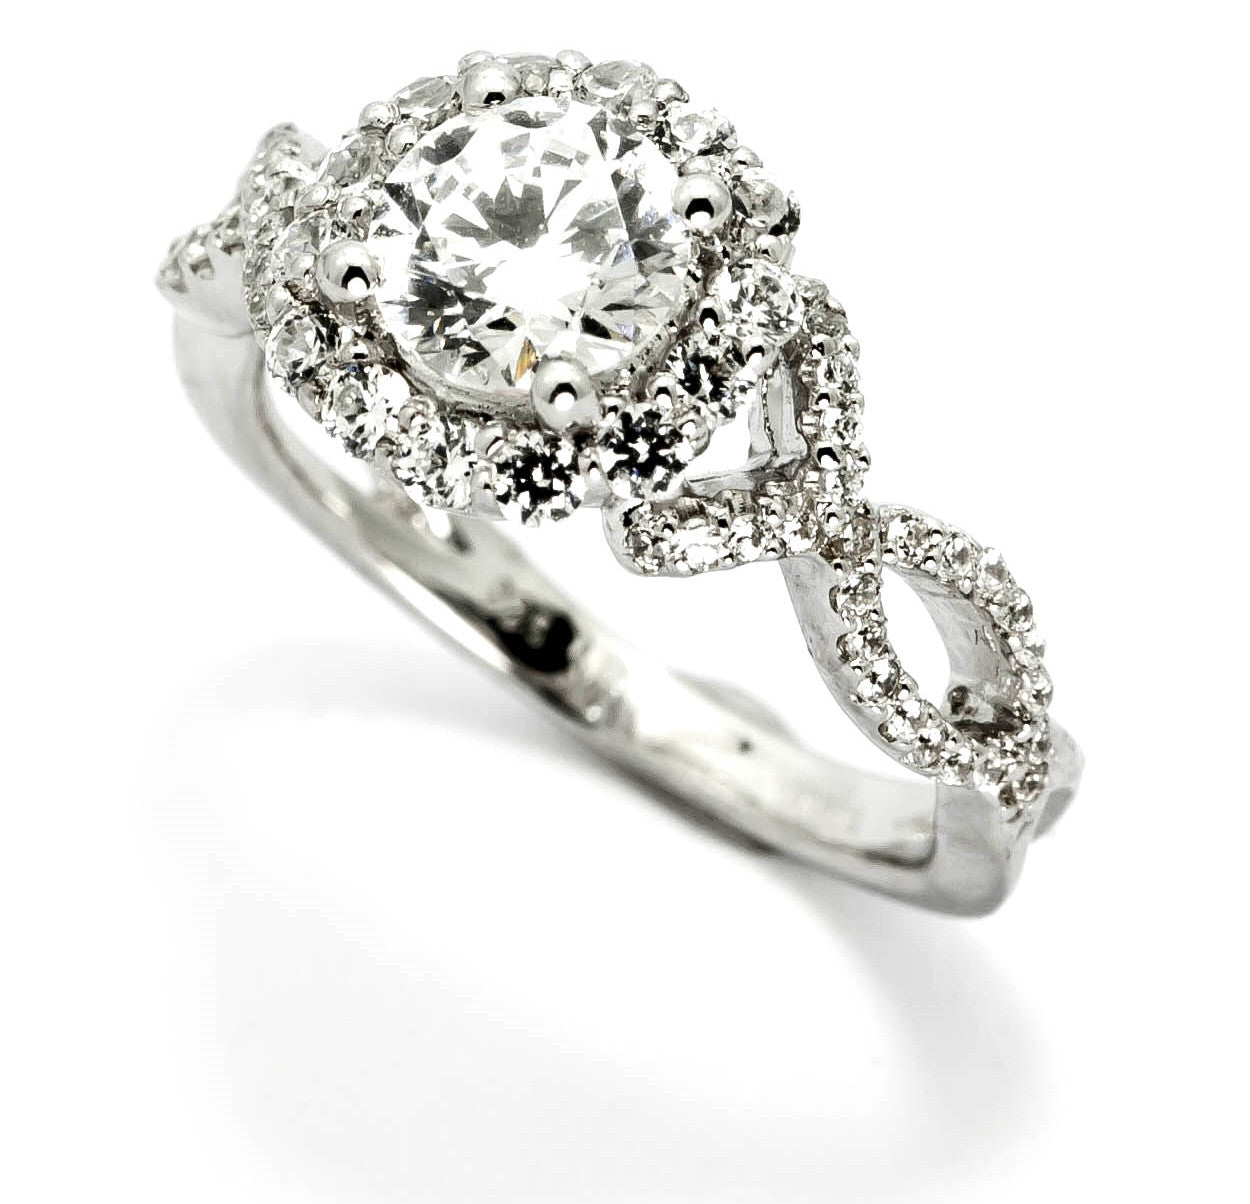 Semi Mount For 1 Carat (6 mm) Center Stone, Floating Halo Engagement Ring With .52 Carat White Diamonds, Unique Shank - Y11328